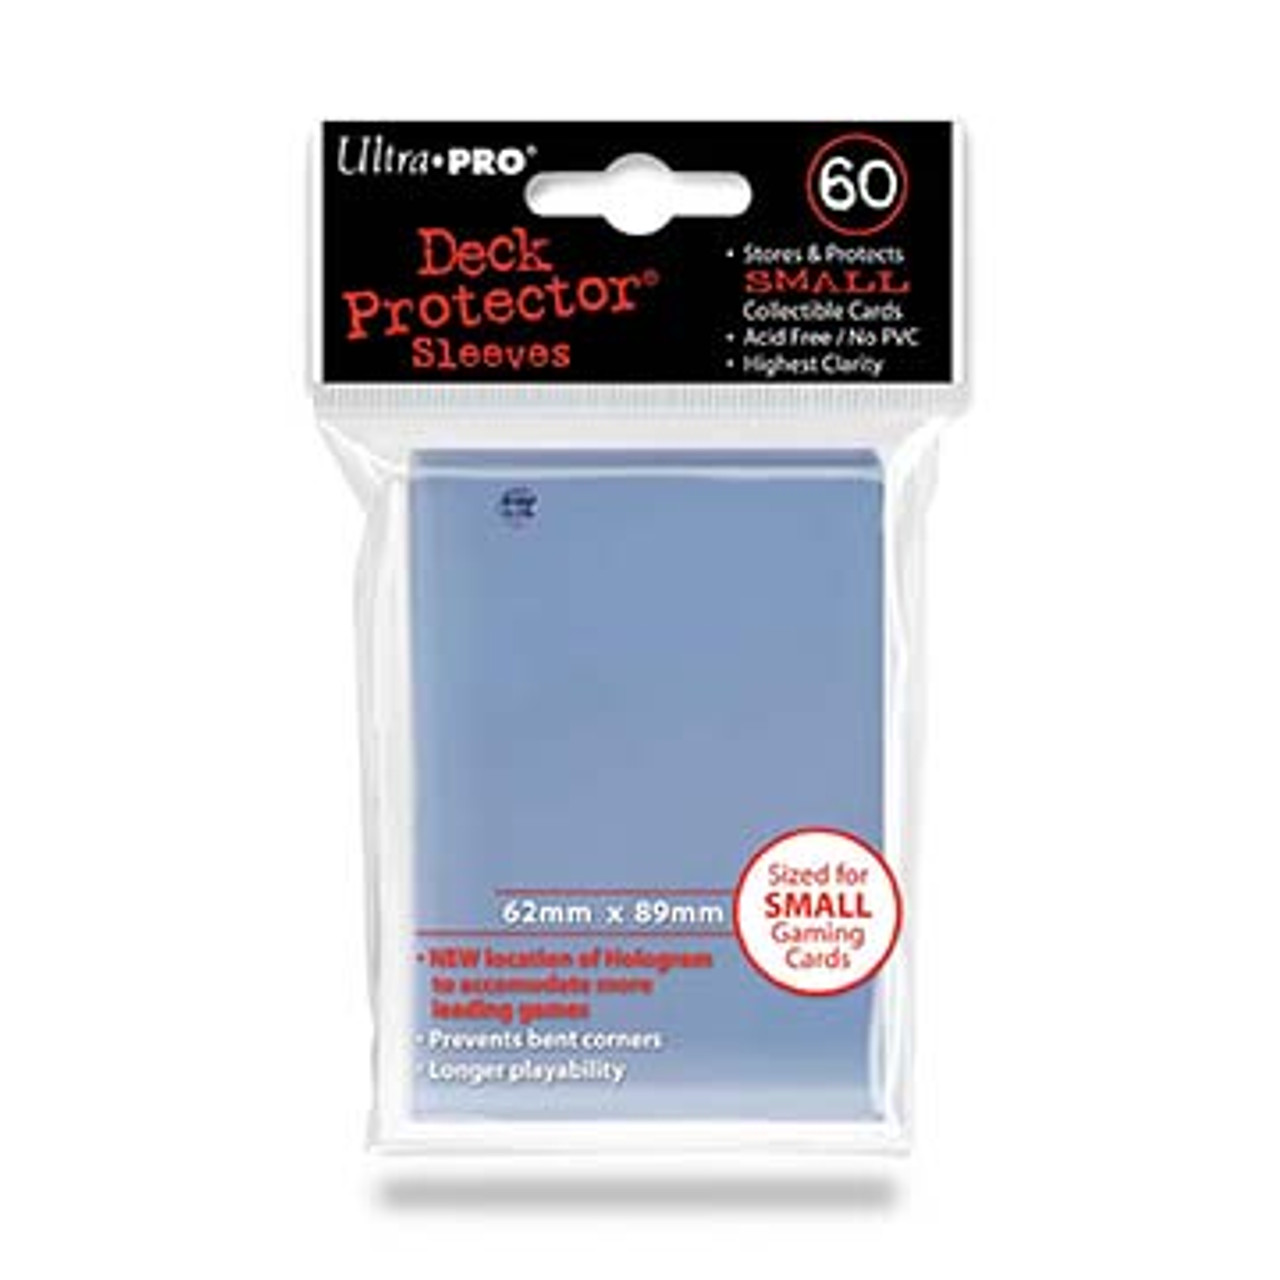 Deck Protectors - Small Size- Clear (One Pack of 60)